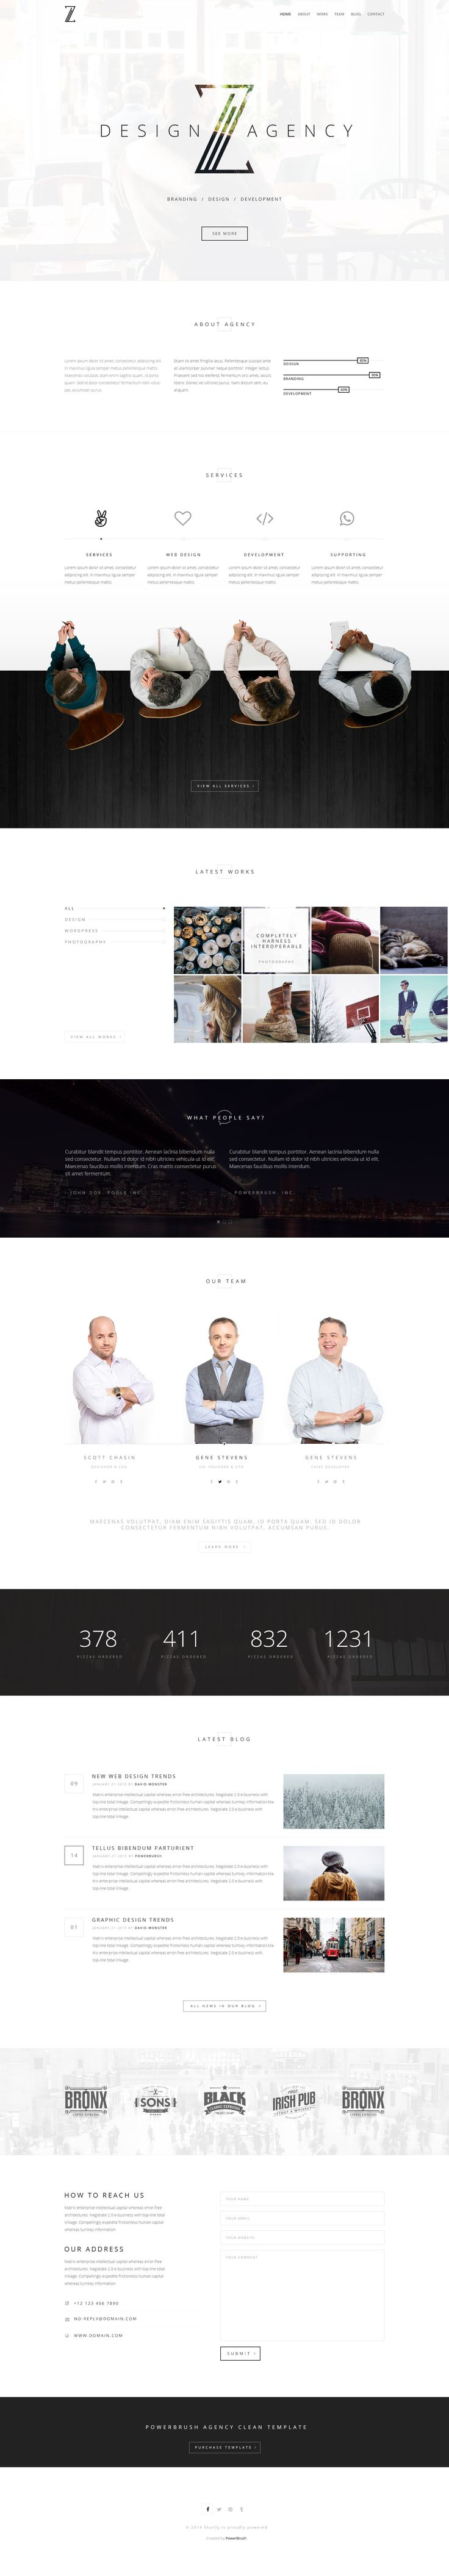 Zuut - Clean Agency WordPress Theme • Download ➝ https://themeforest.net/item/zuut-clean-agency-wordpress-theme/11937895?ref=pxcr